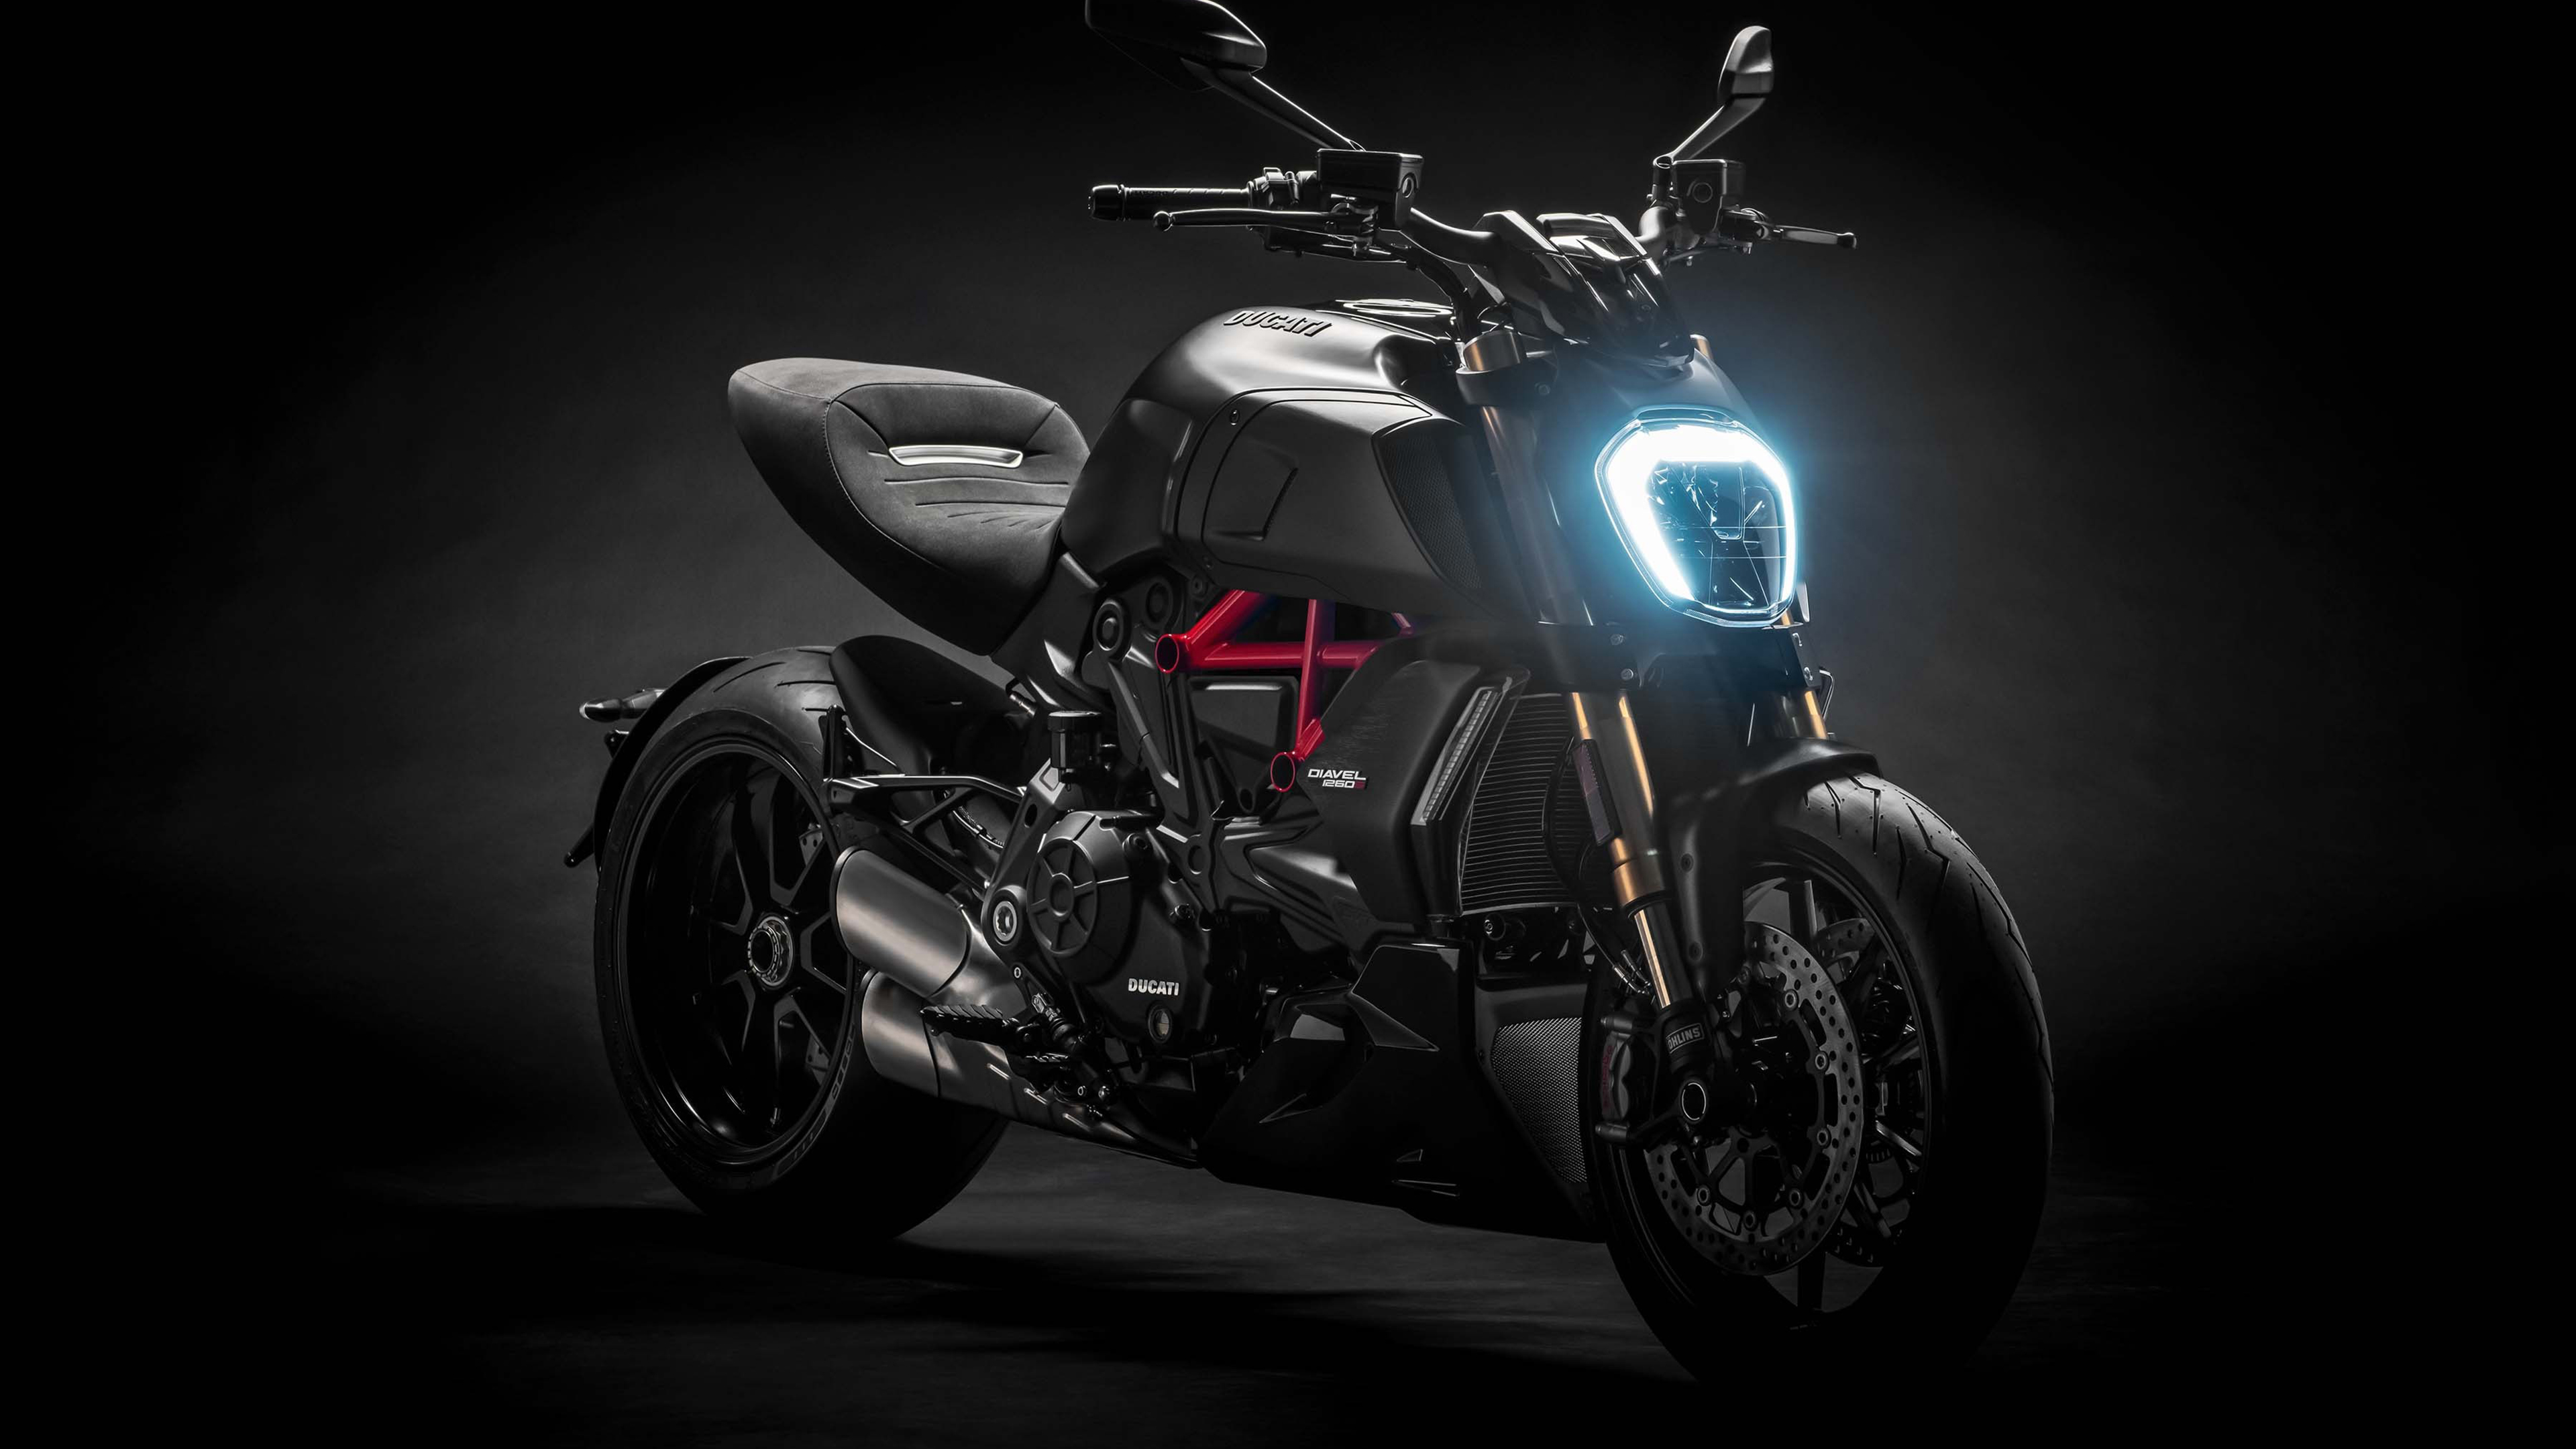 2019 Ducati Diavel 1260 S 4k Wallpapers - Ducati Diavel 1260 S 2019 , HD Wallpaper & Backgrounds